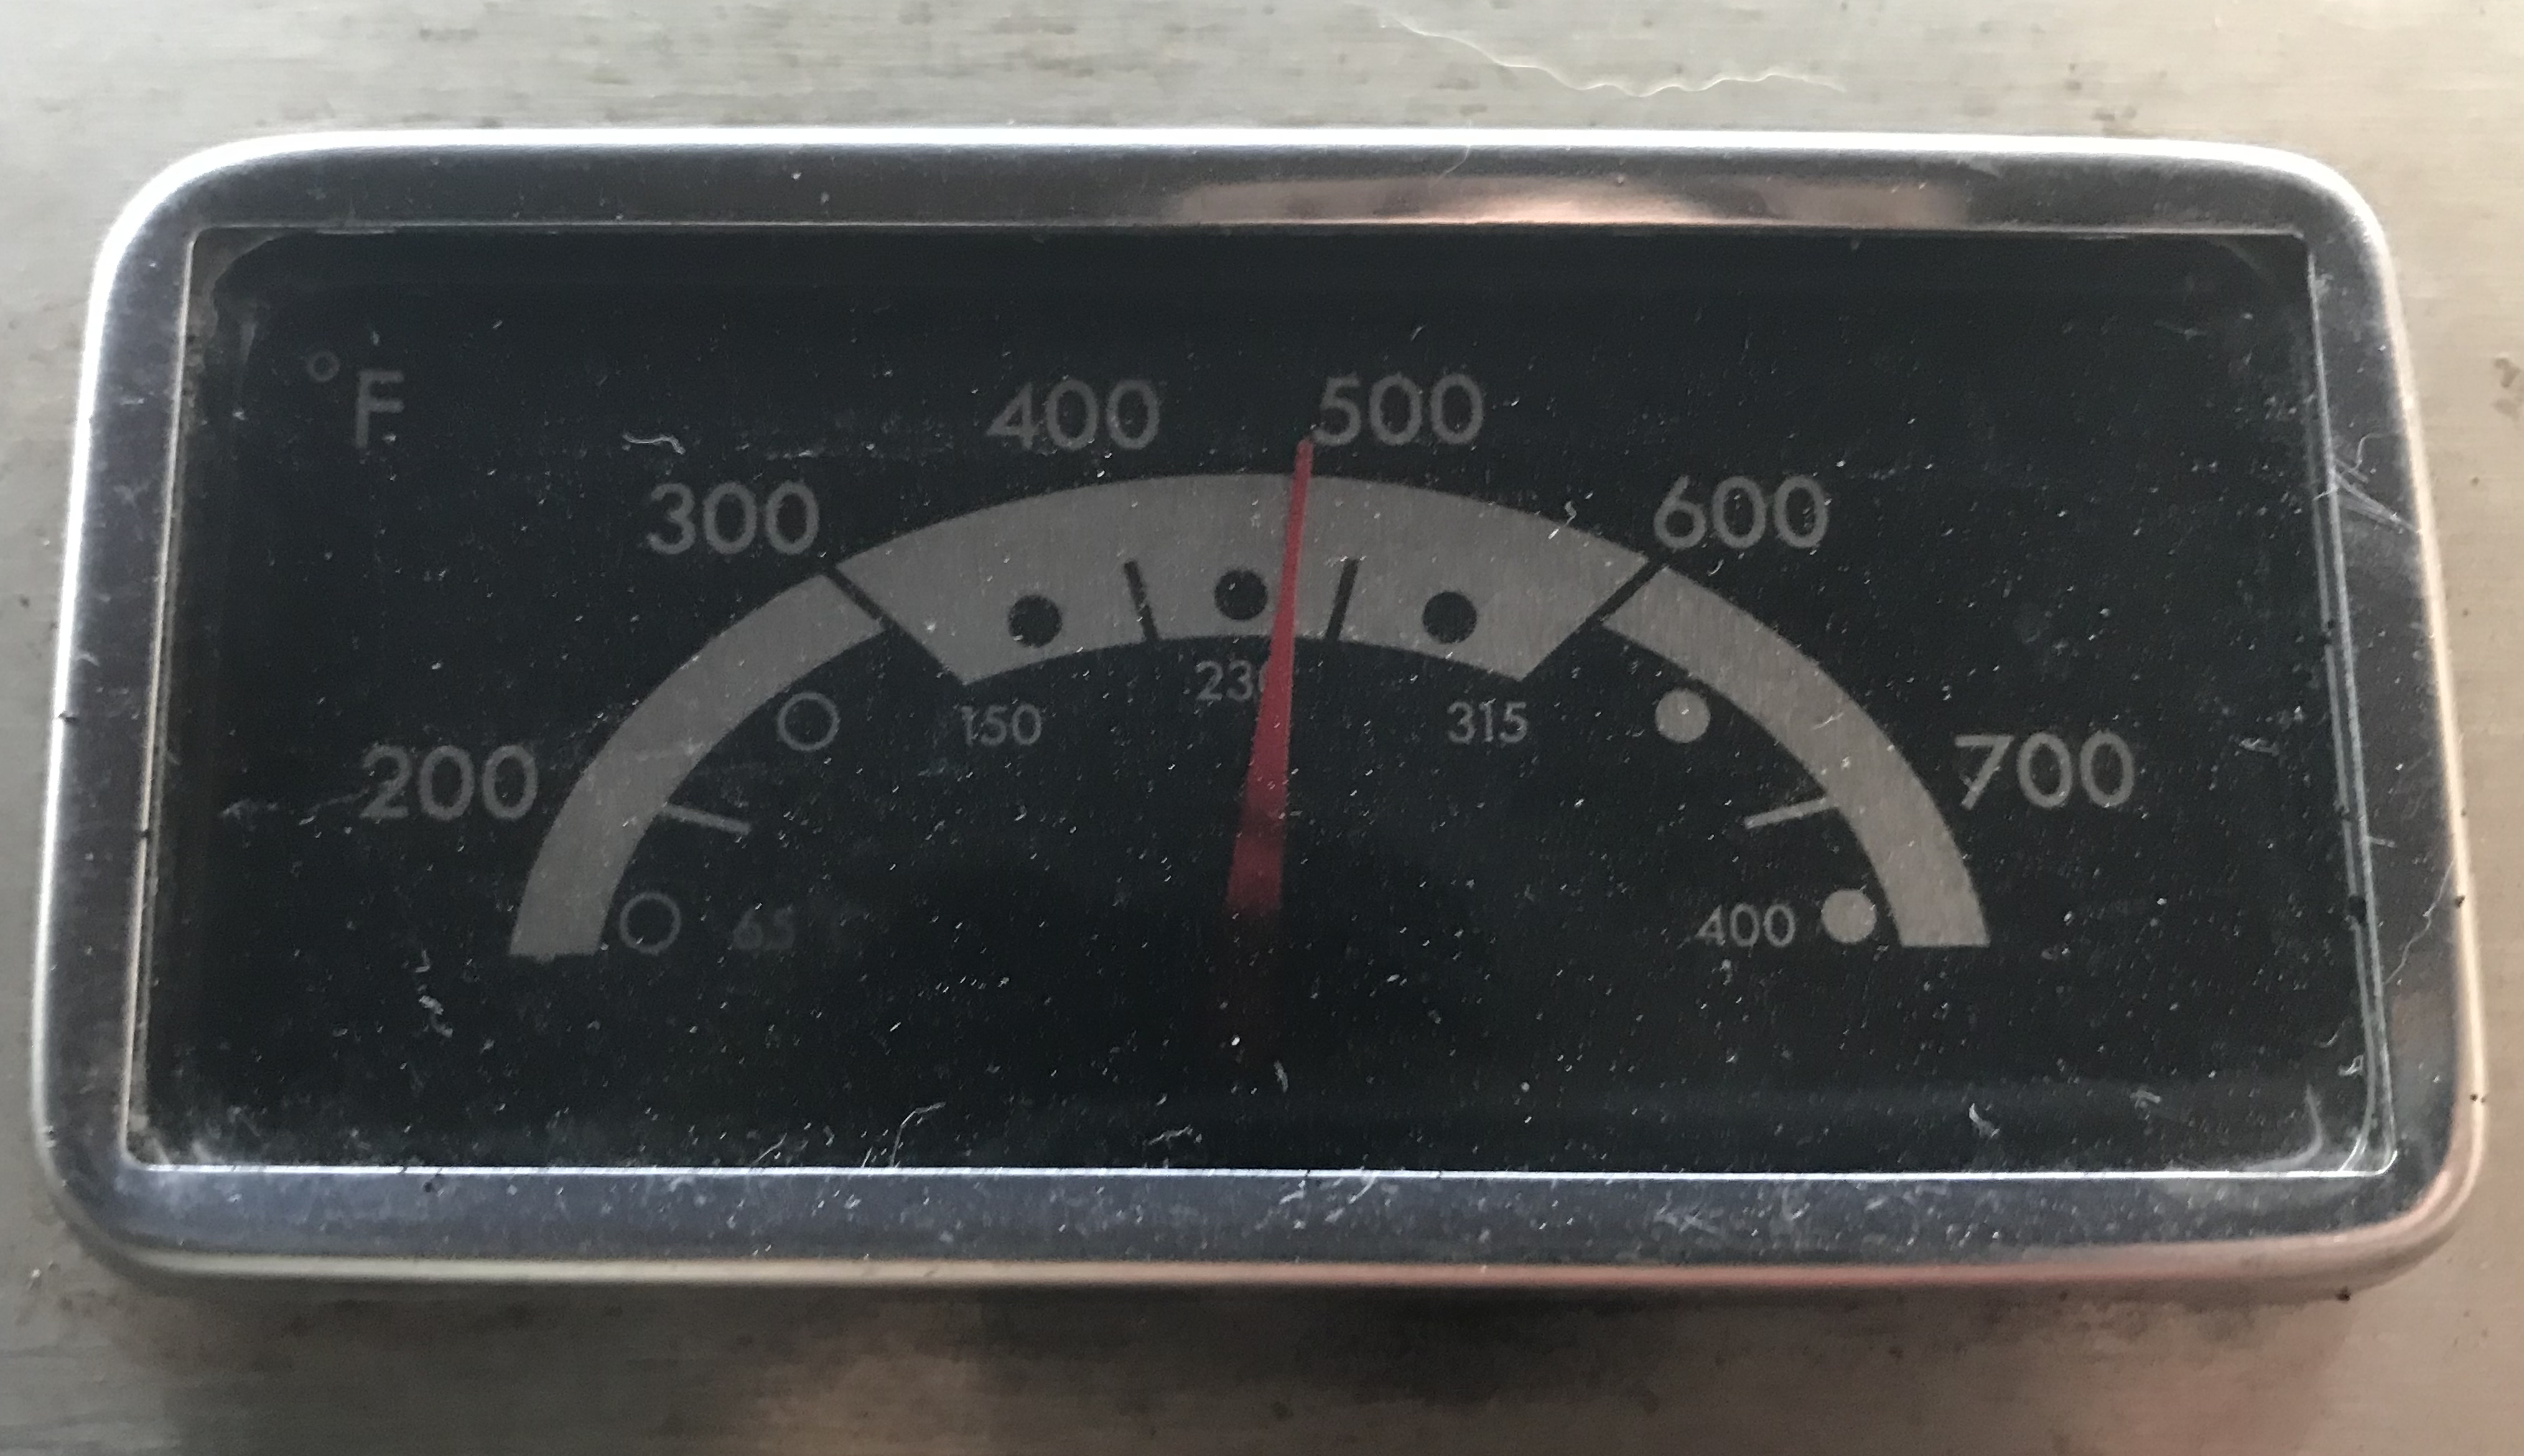 Temperature Gauge on grill close to 500